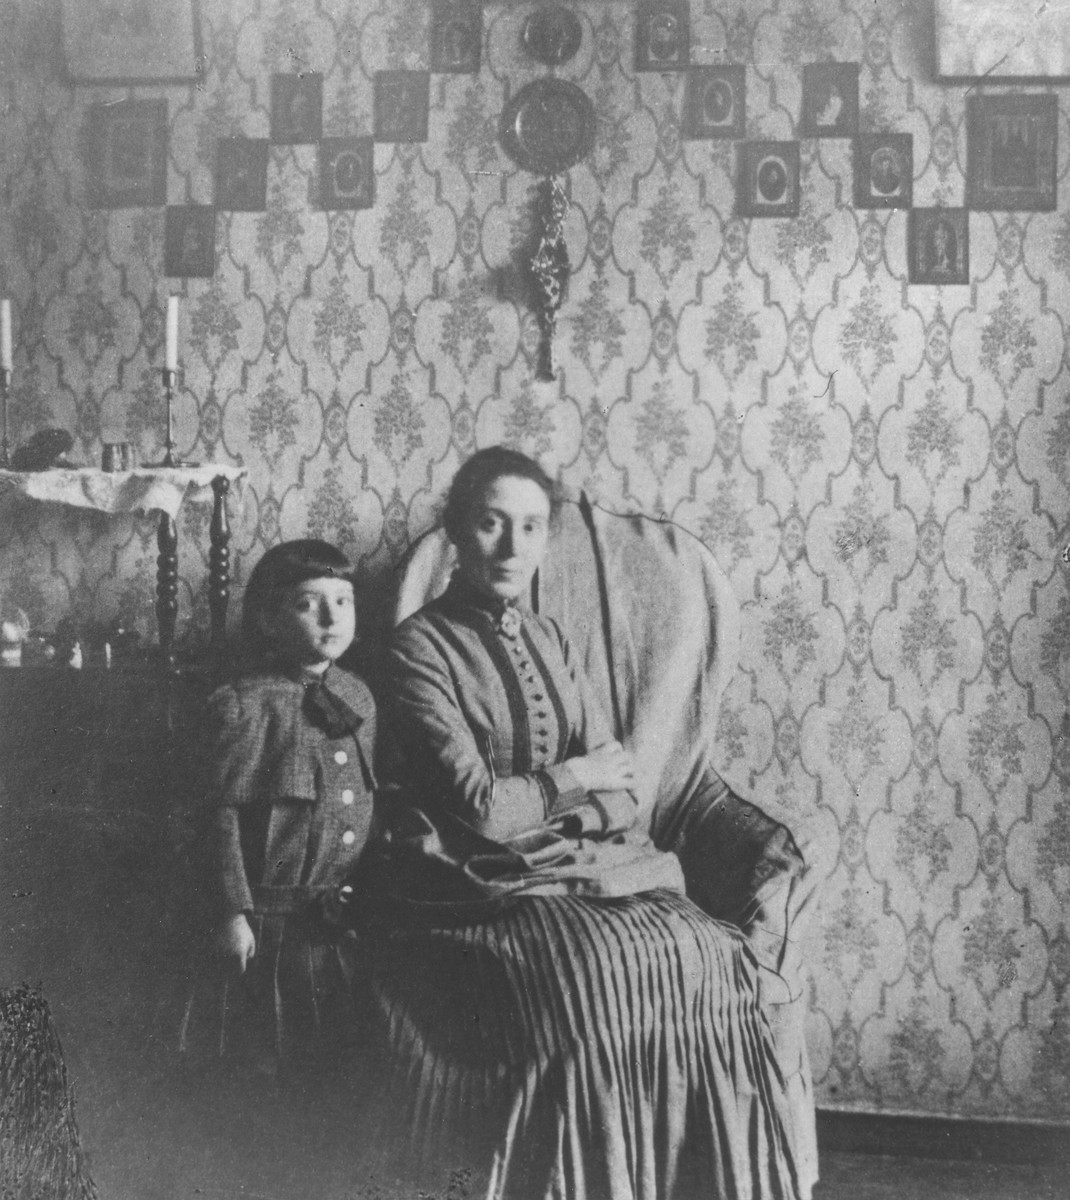 Fania Mikolaevsky with her grandson Sasha Magid in her home in St. Petersburg.